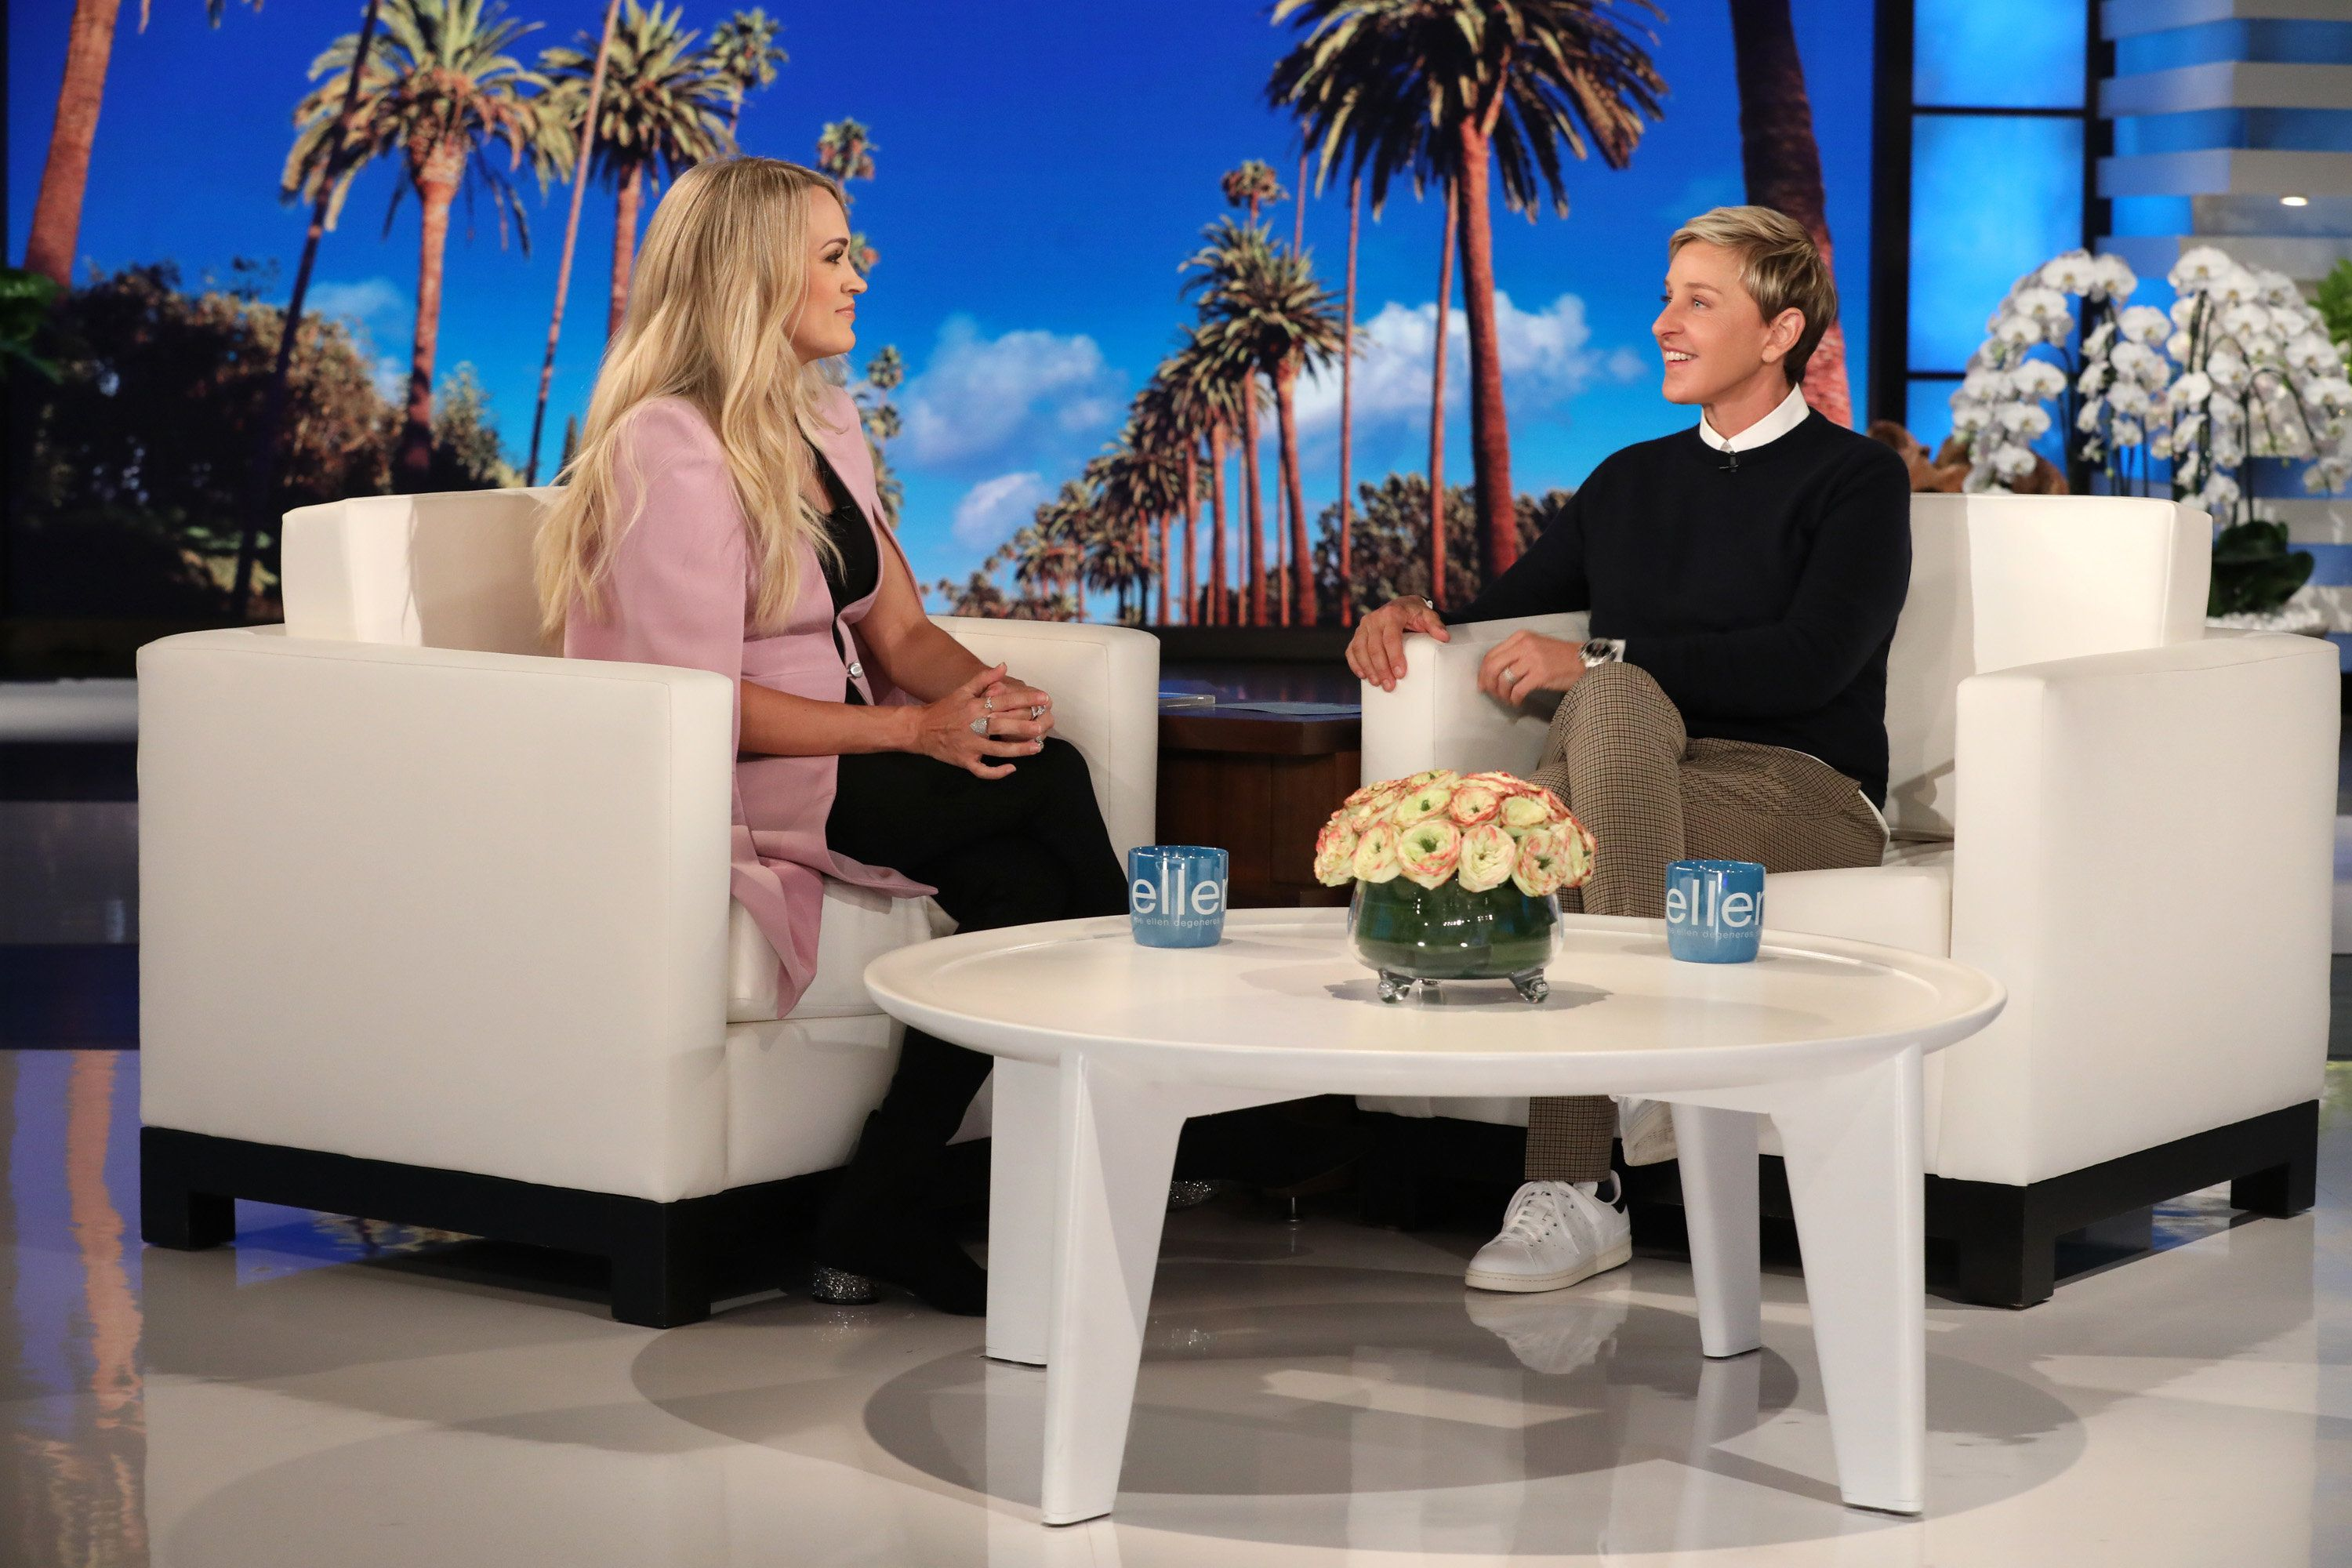 Carrie Underwood Tells Ellen DeGeneres Why She Went Public About Her